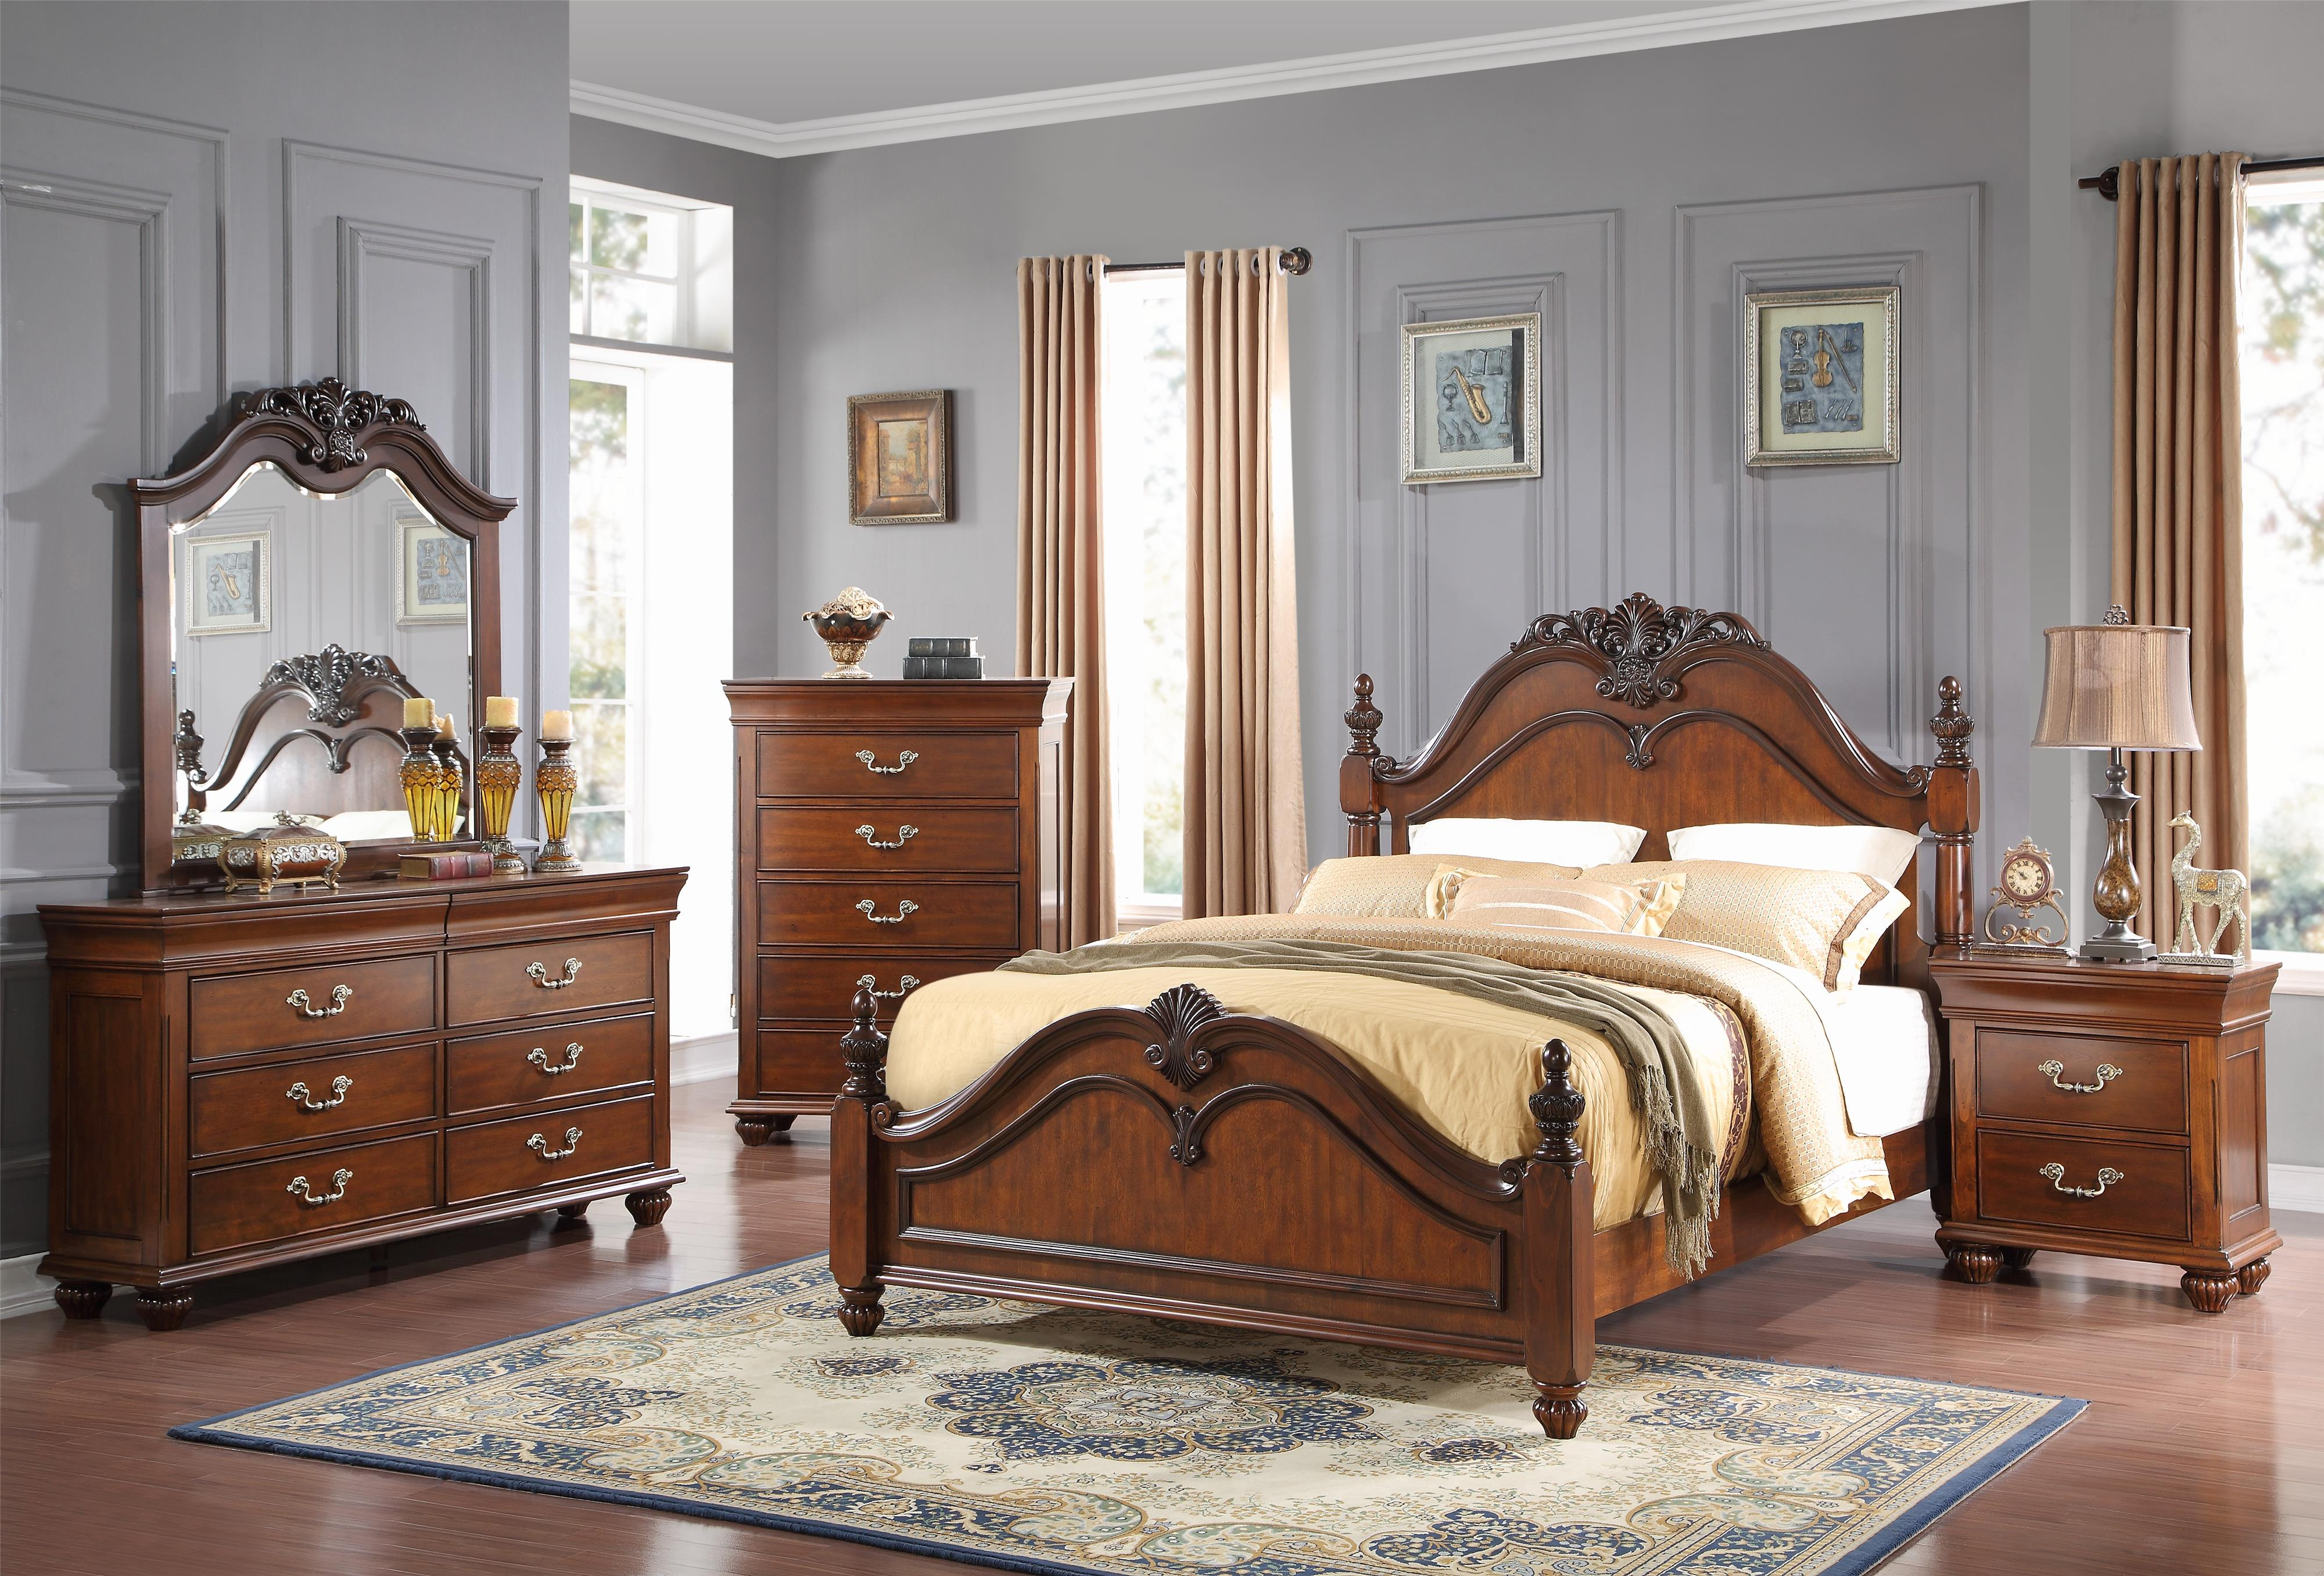 Jaquelyn (b8651) by New Classic - Royal Furniture - New ...